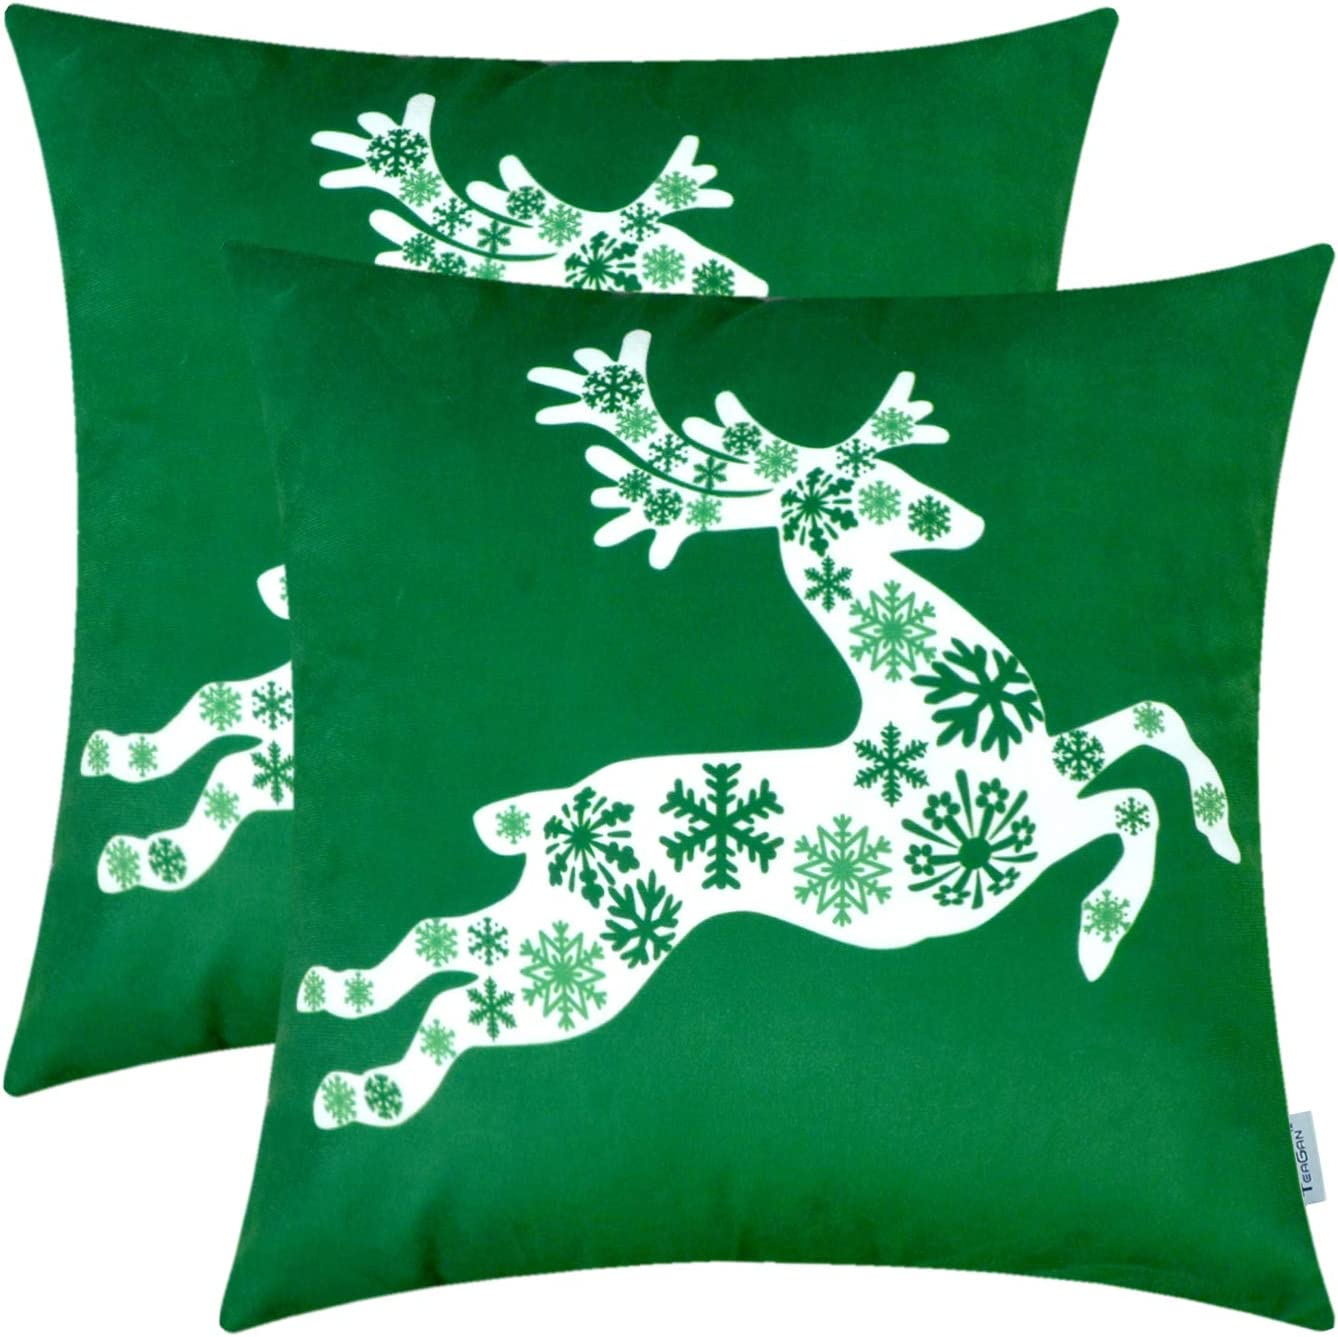 Christmas Cushion Covers, 2PCS Pillow Shells with Christmas Deer Print, 100% Polyester Throw Pillow Covers for Home Decor Bedroom Living Room Garden Couch Bed Sofa Chair, 18X18 Inch, Christmas Green